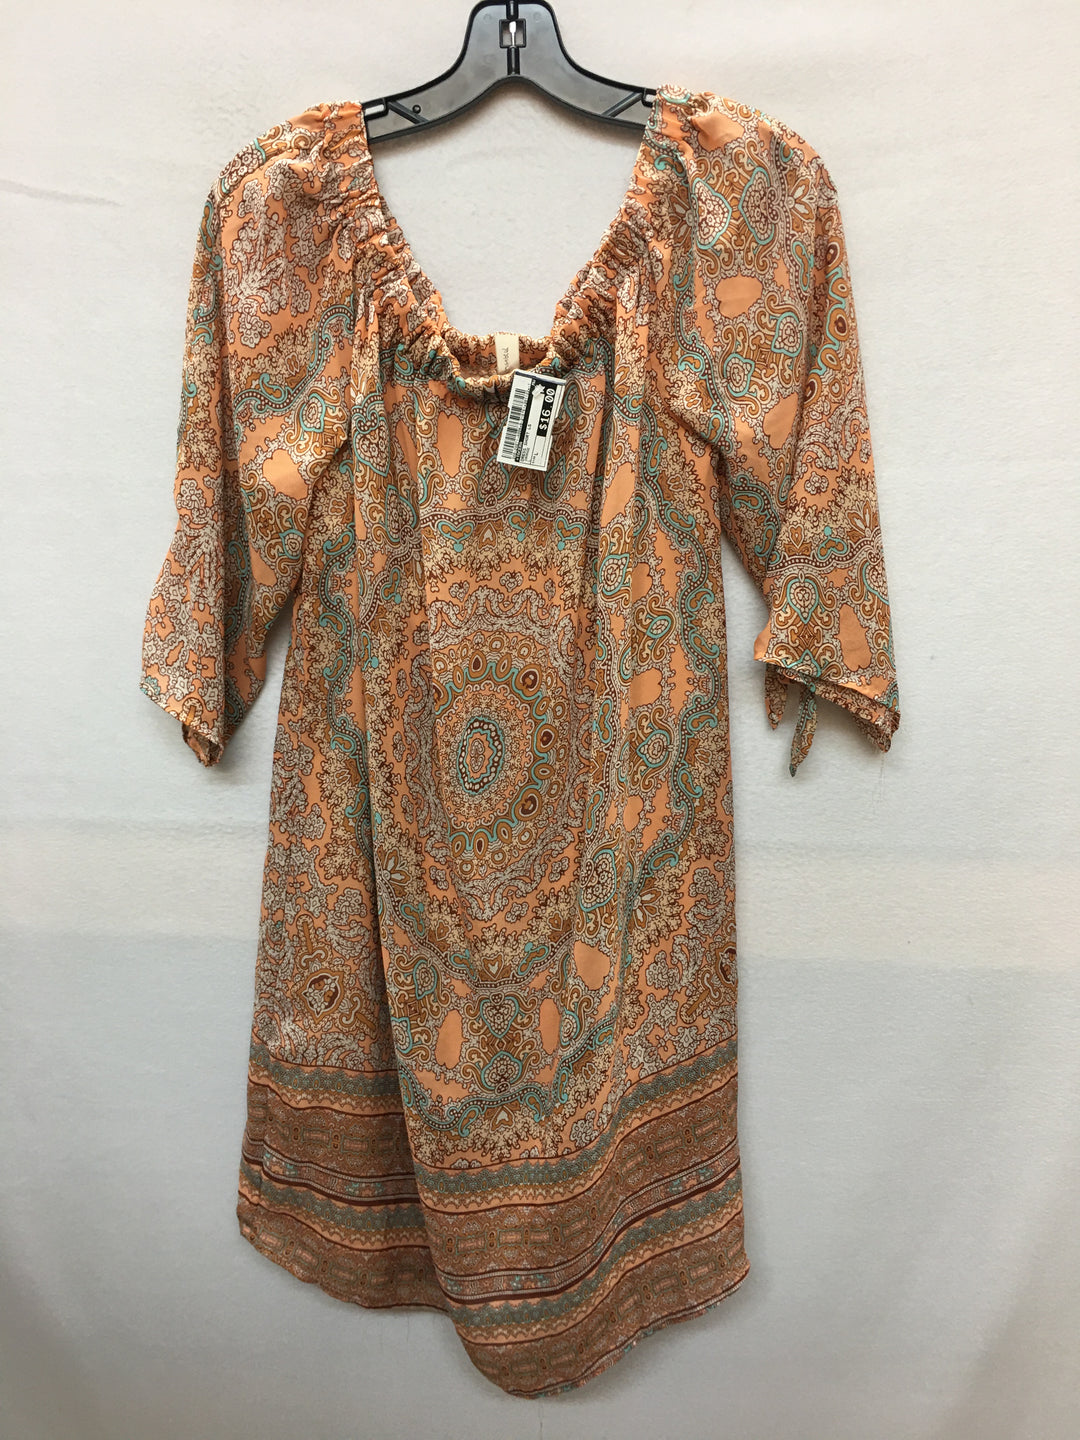 Primary Photo - BRAND: TACERA <BR>STYLE: DRESS SHORT LONG SLEEVE <BR>COLOR: ORANGE <BR>SIZE: L <BR>SKU: 240-24071-4006